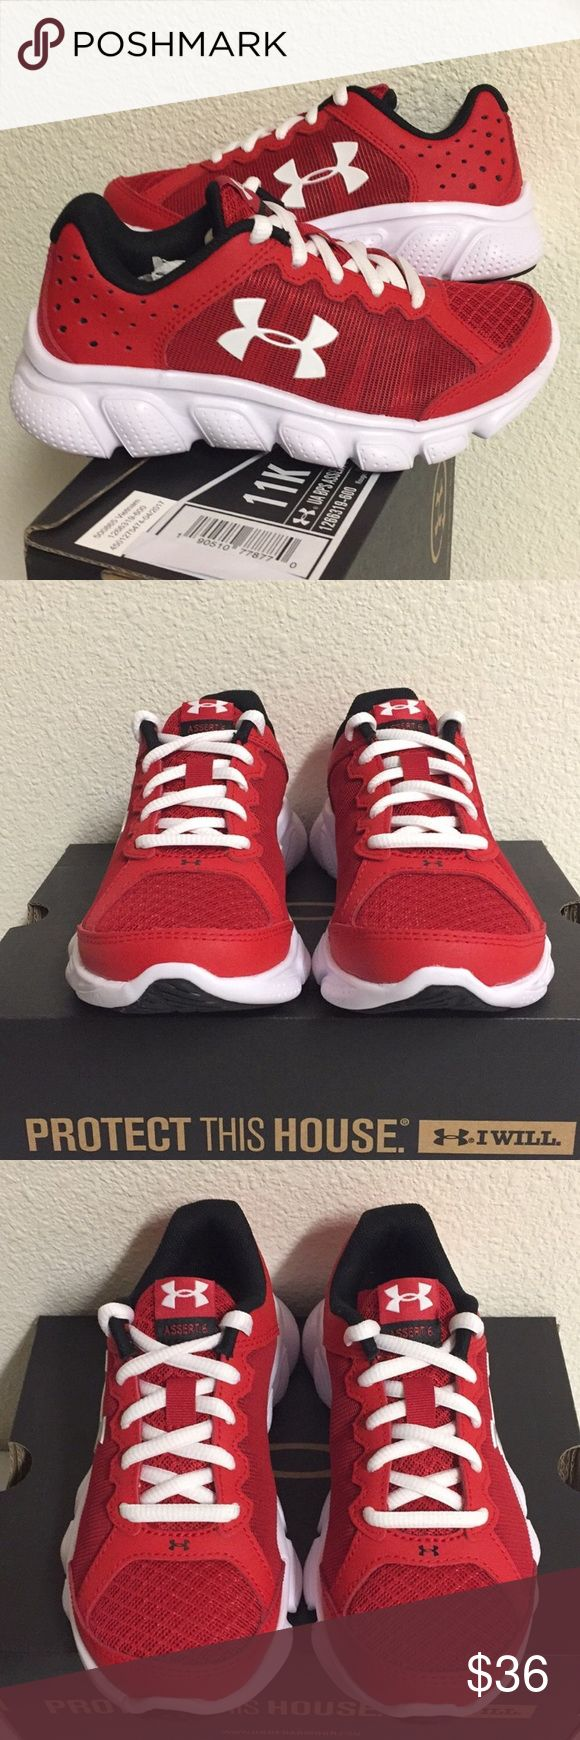 UNDER ARMOUR BPS ASSERT 6 (11K) KIDS SHOES Brand New Under Armour BPS ASSERT 6 Size:11K Kids Shoes. Under Armour Youth BPS Assert 6 Running Shoes - Full-length cushioned EVA midsole delivers the ultimate lightweight and responsive ride. The strategically placed rubber traction covers high impact zones for greater durability with less weight. Under Armour Shoes Sneakers